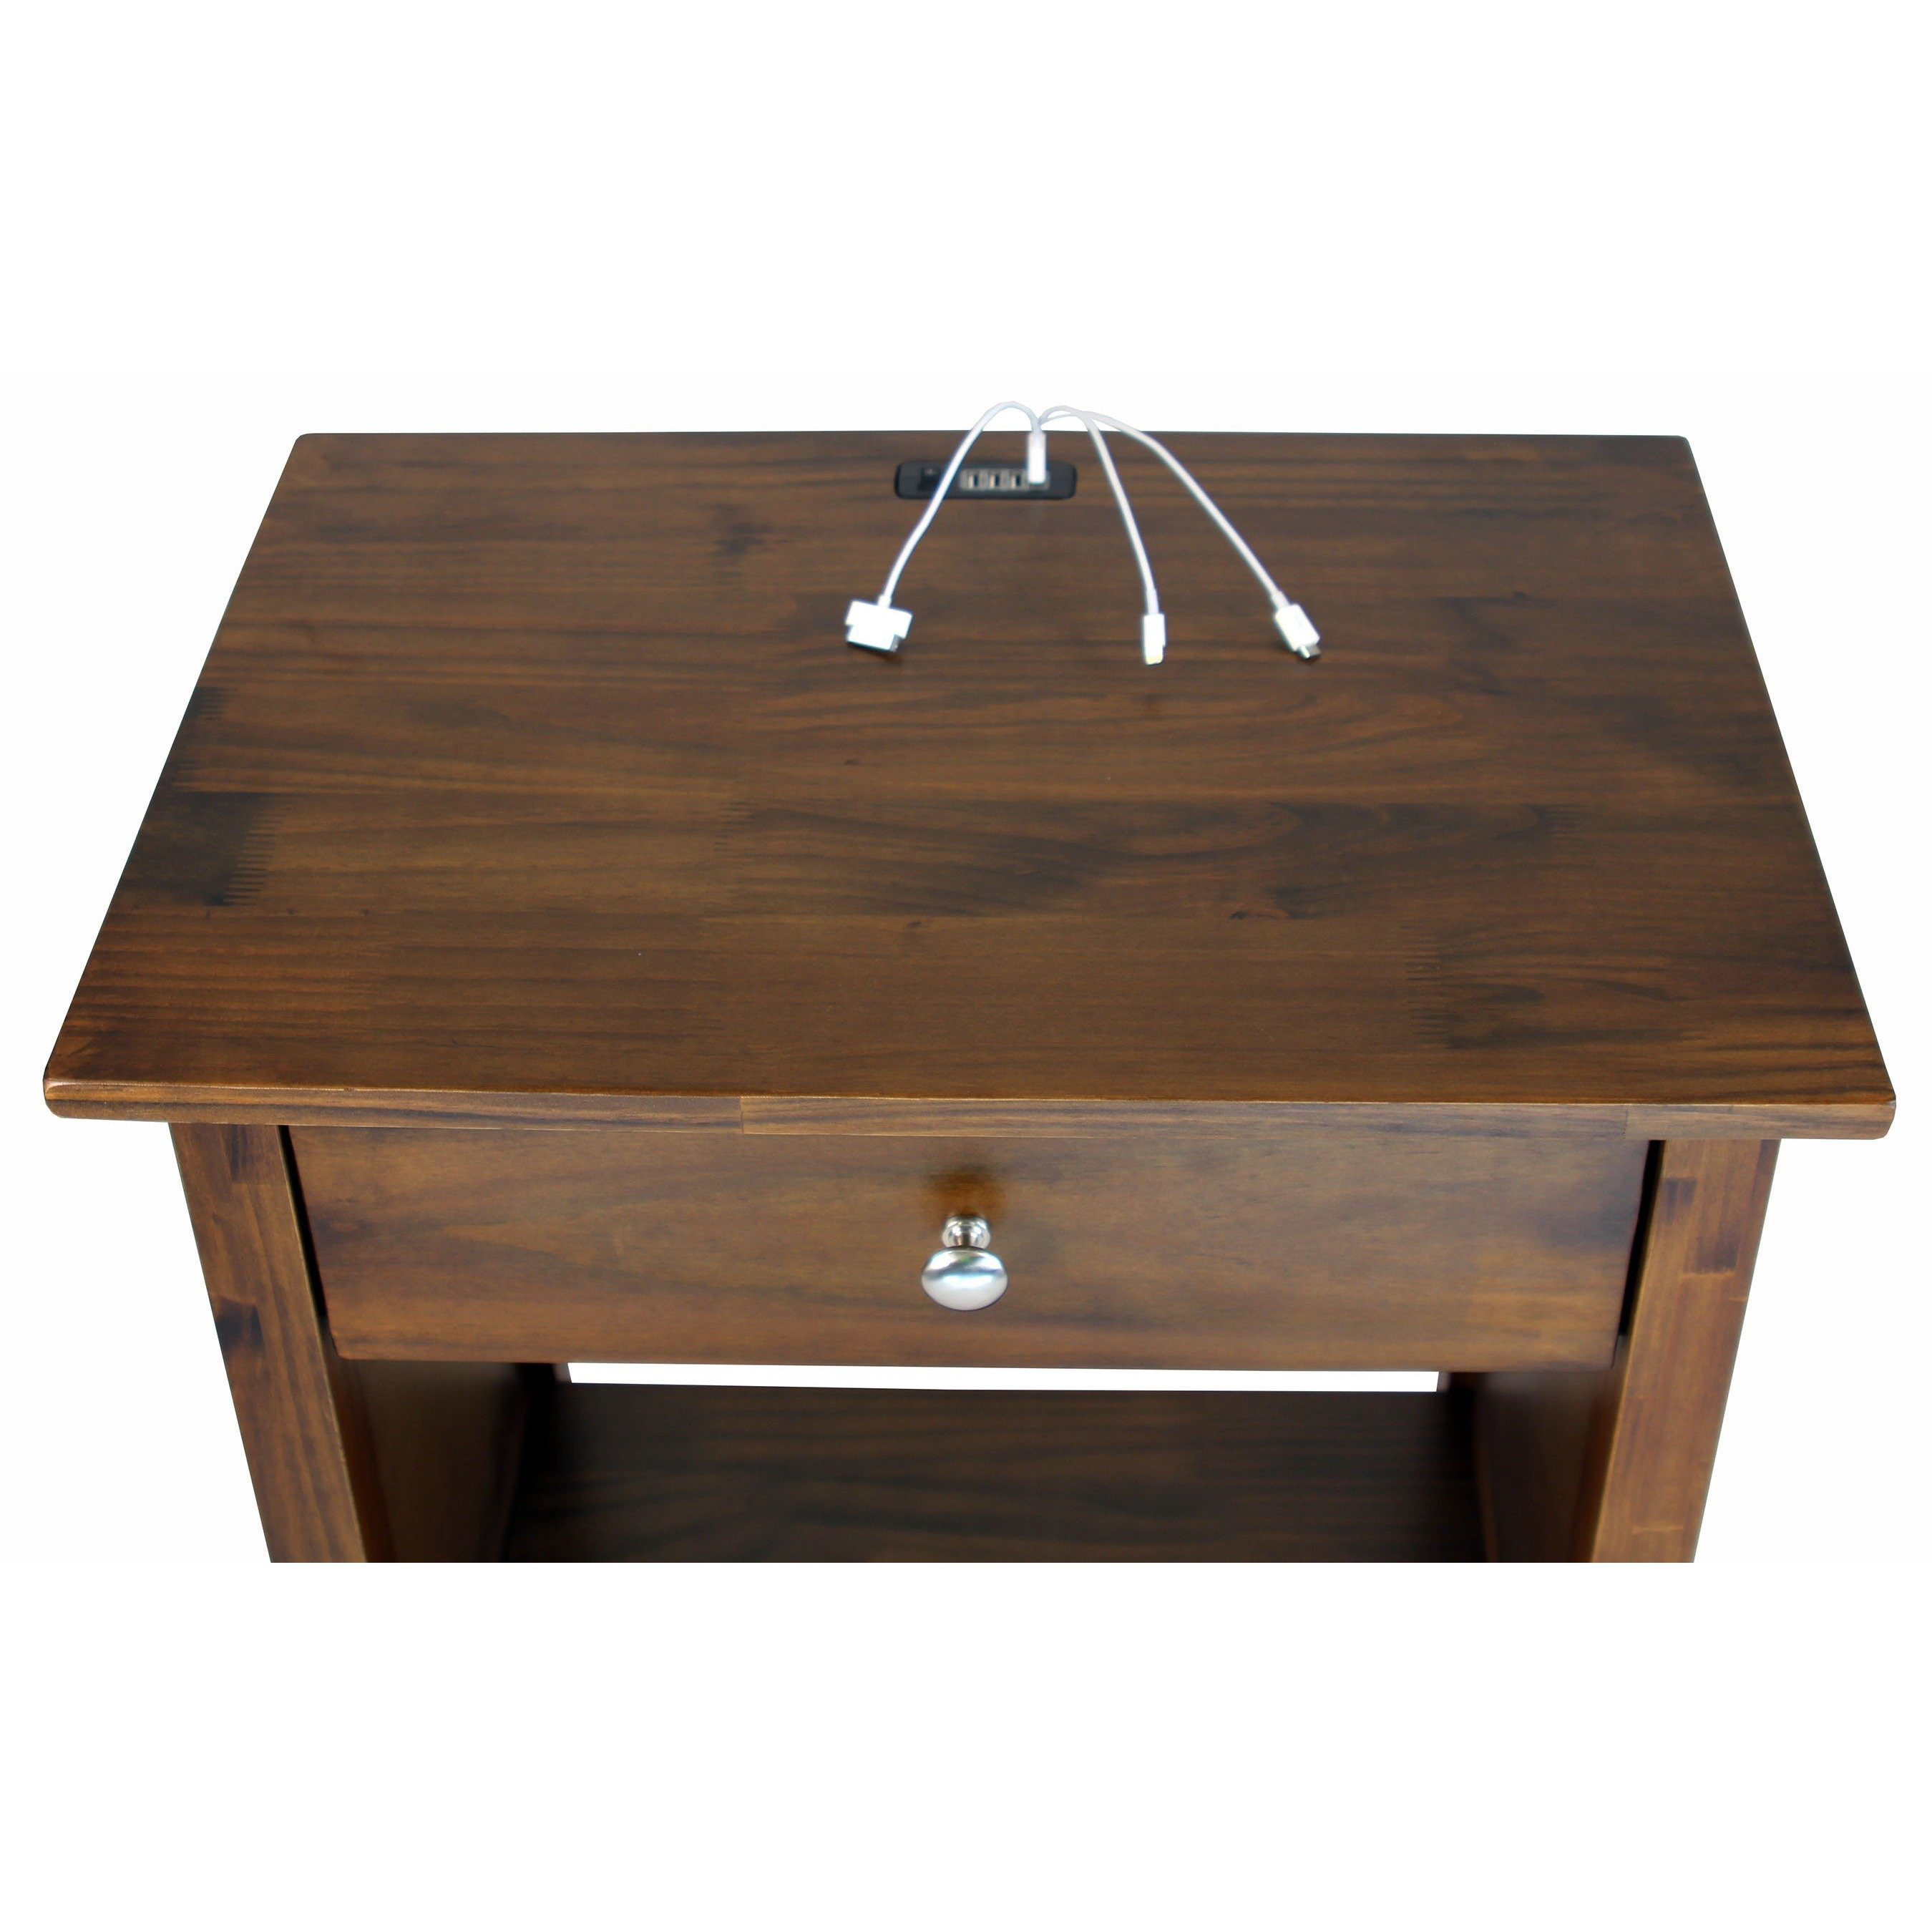 vanderbilt nightstand end table with usb ports free accent port shipping today target console kidney bean shaped long white side wood kitchen and chairs ott coffee seat for drums